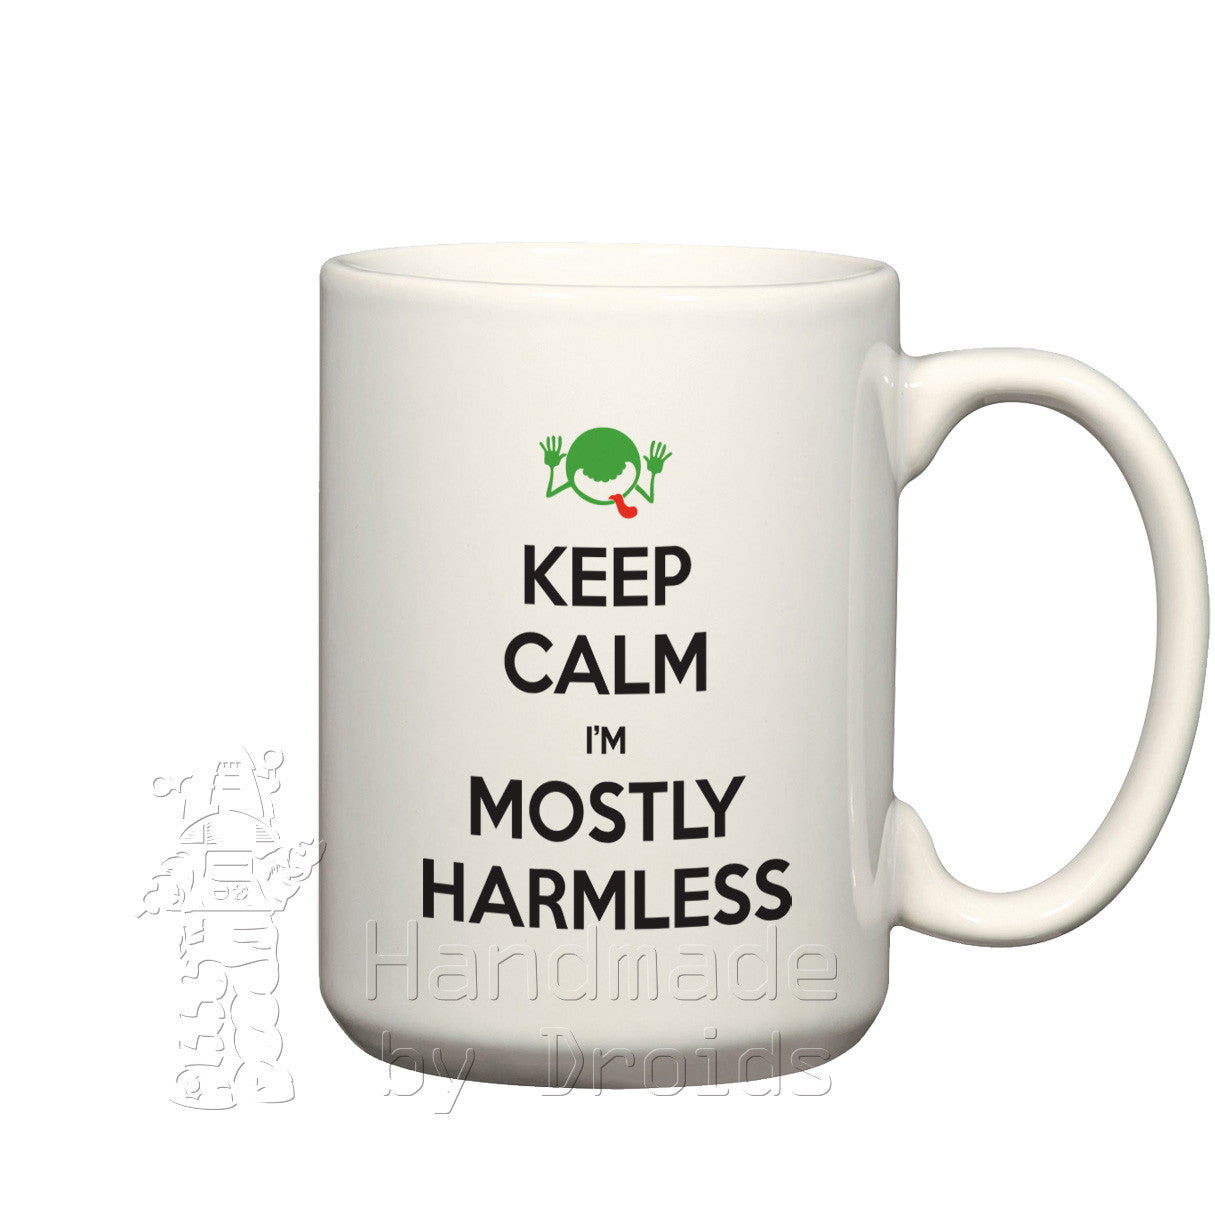 """Keep calm I'm mostly harmless"" mug"